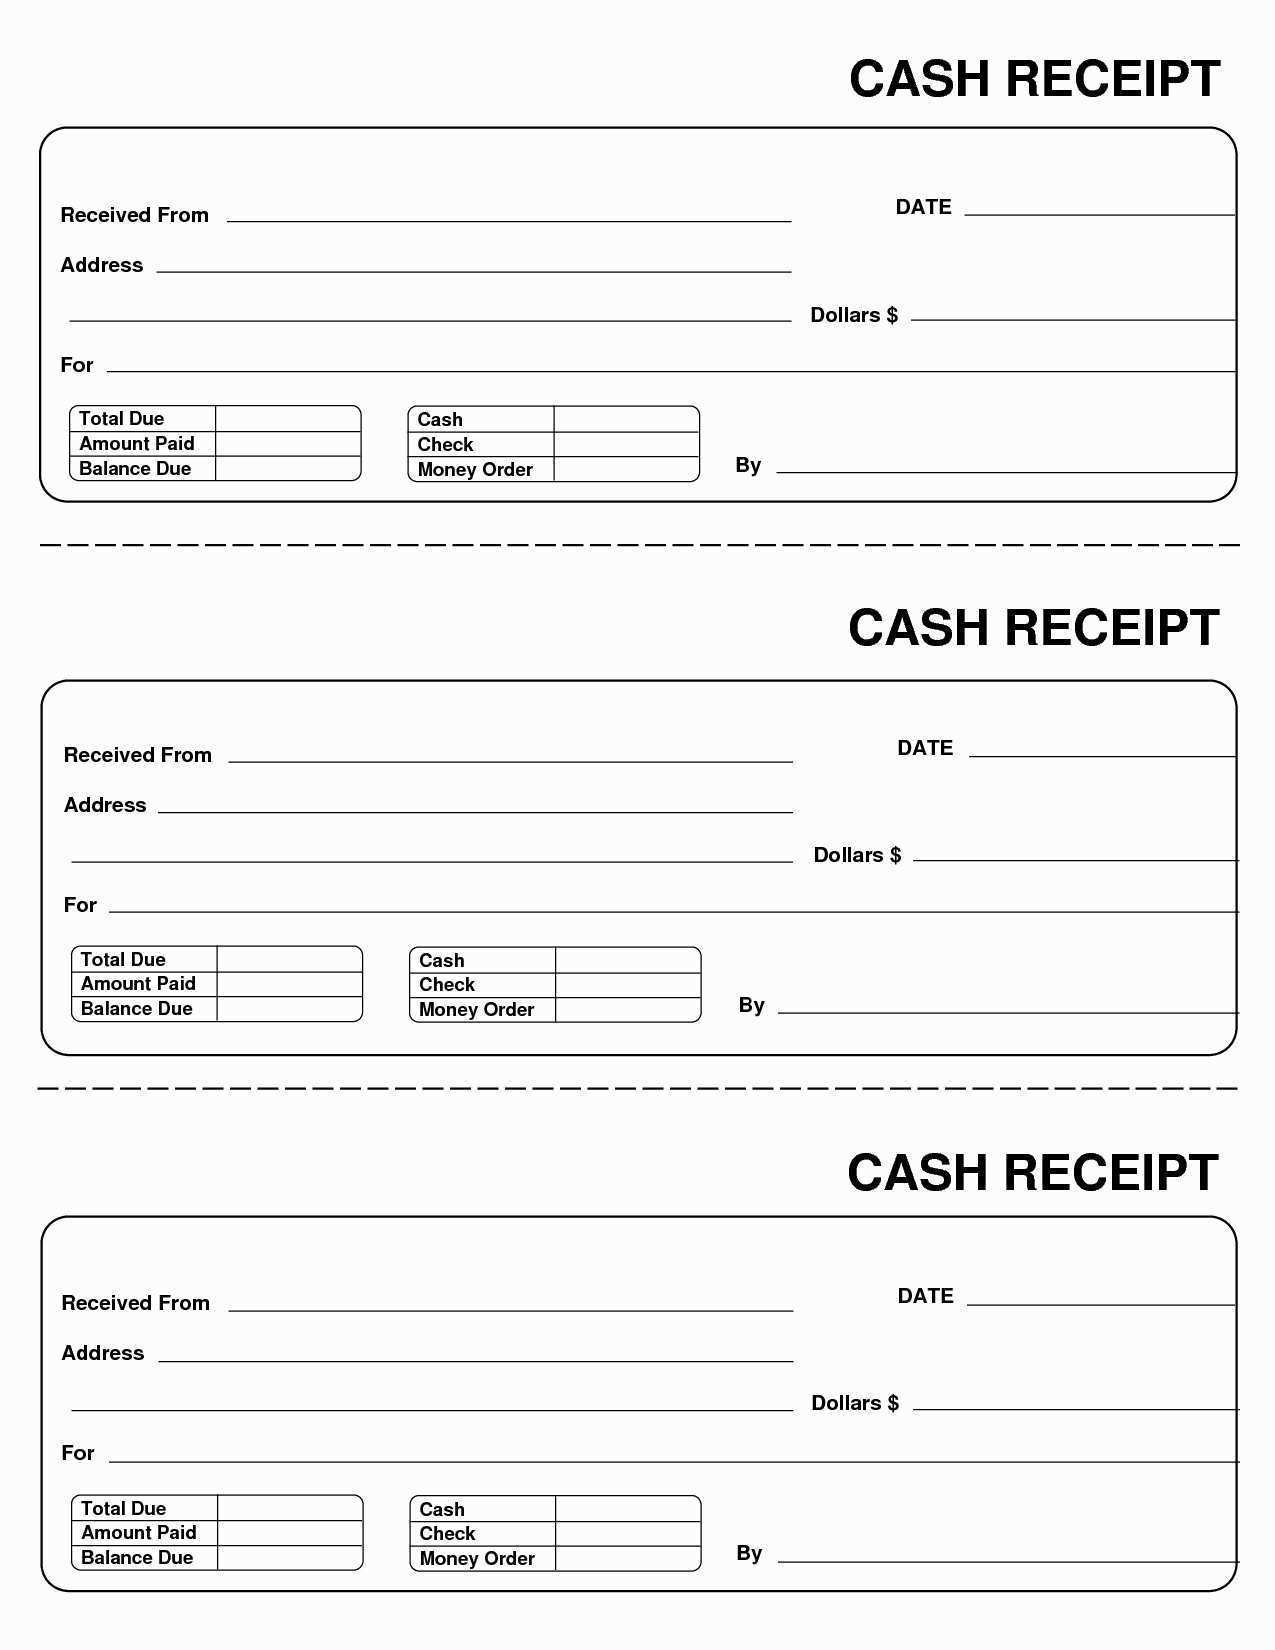 12 Customize Our Free Blank Invoice Receipt Template For Ms With Regard To Customizable Blank Check Tem Free Receipt Template Receipt Template Invoice Template